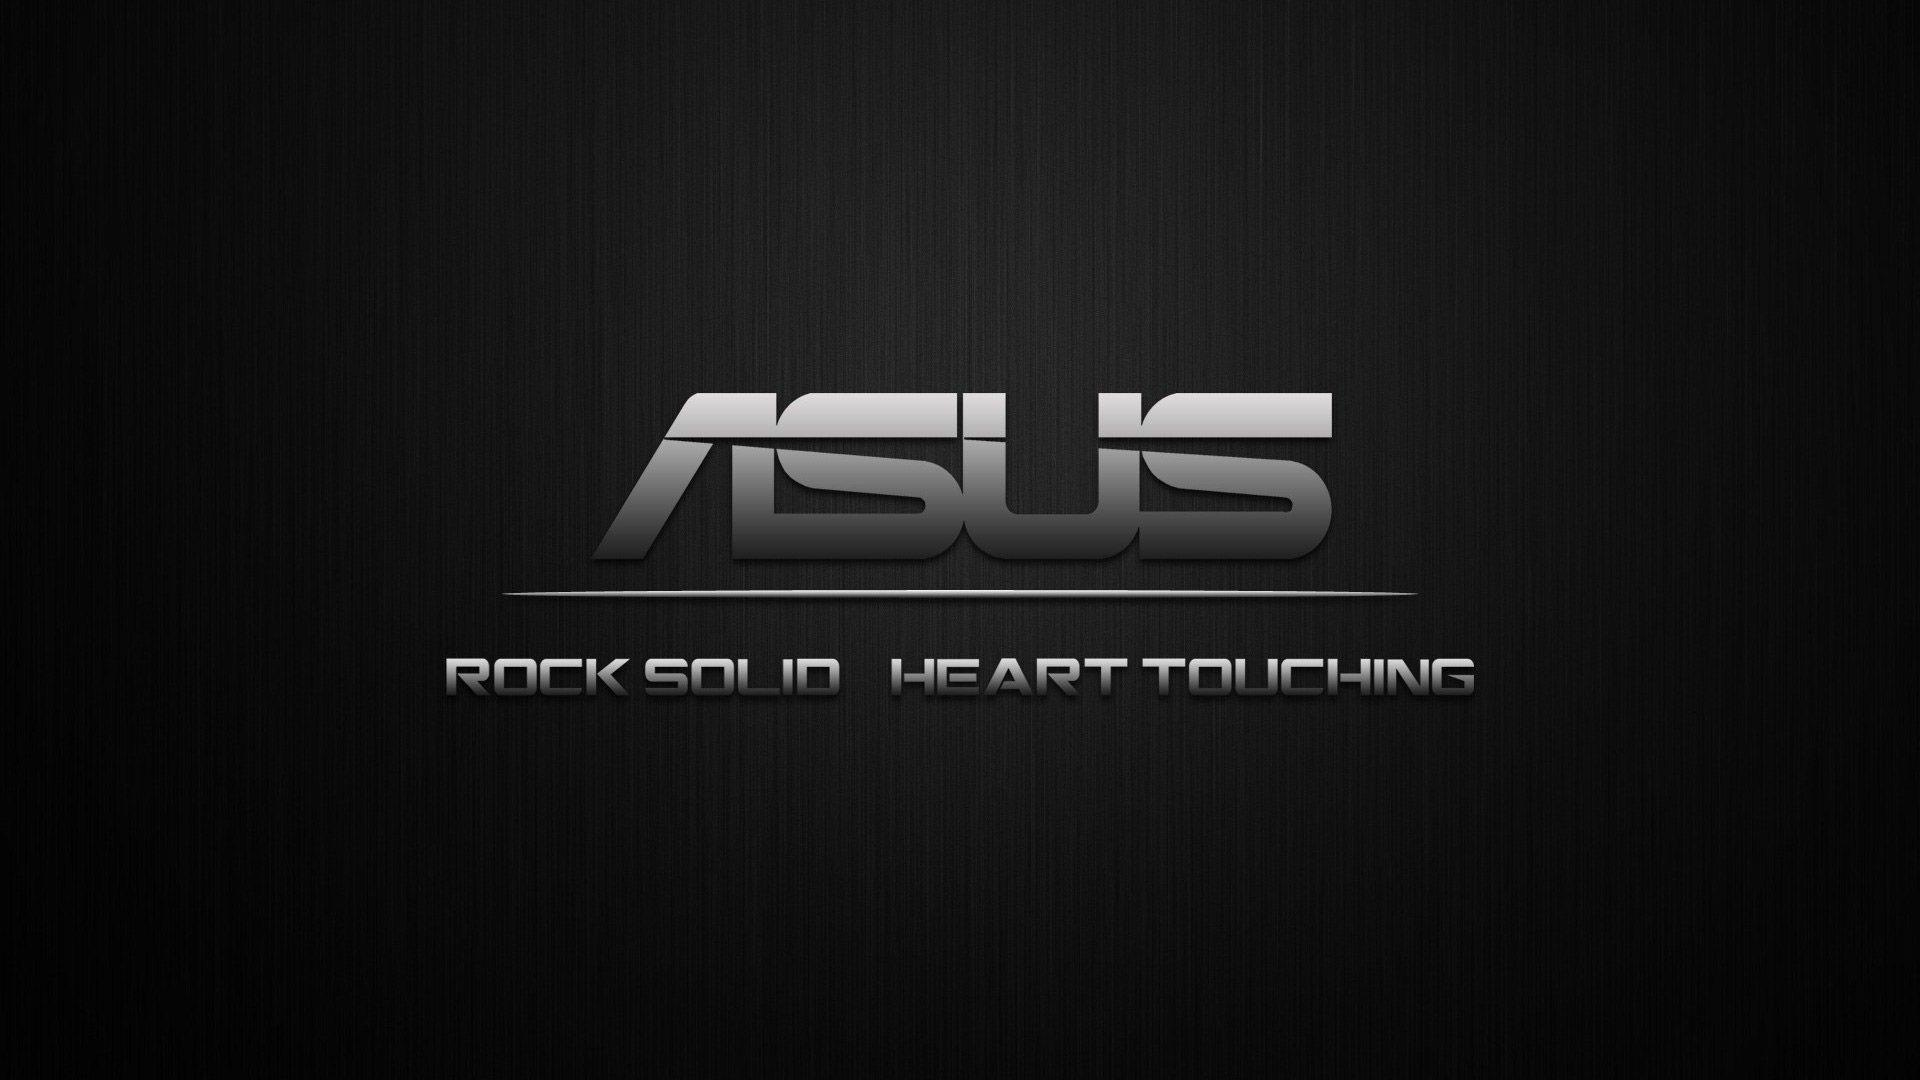 Asus Hd Wallpapers Wallpaperscom Best Wallpapers for PCs